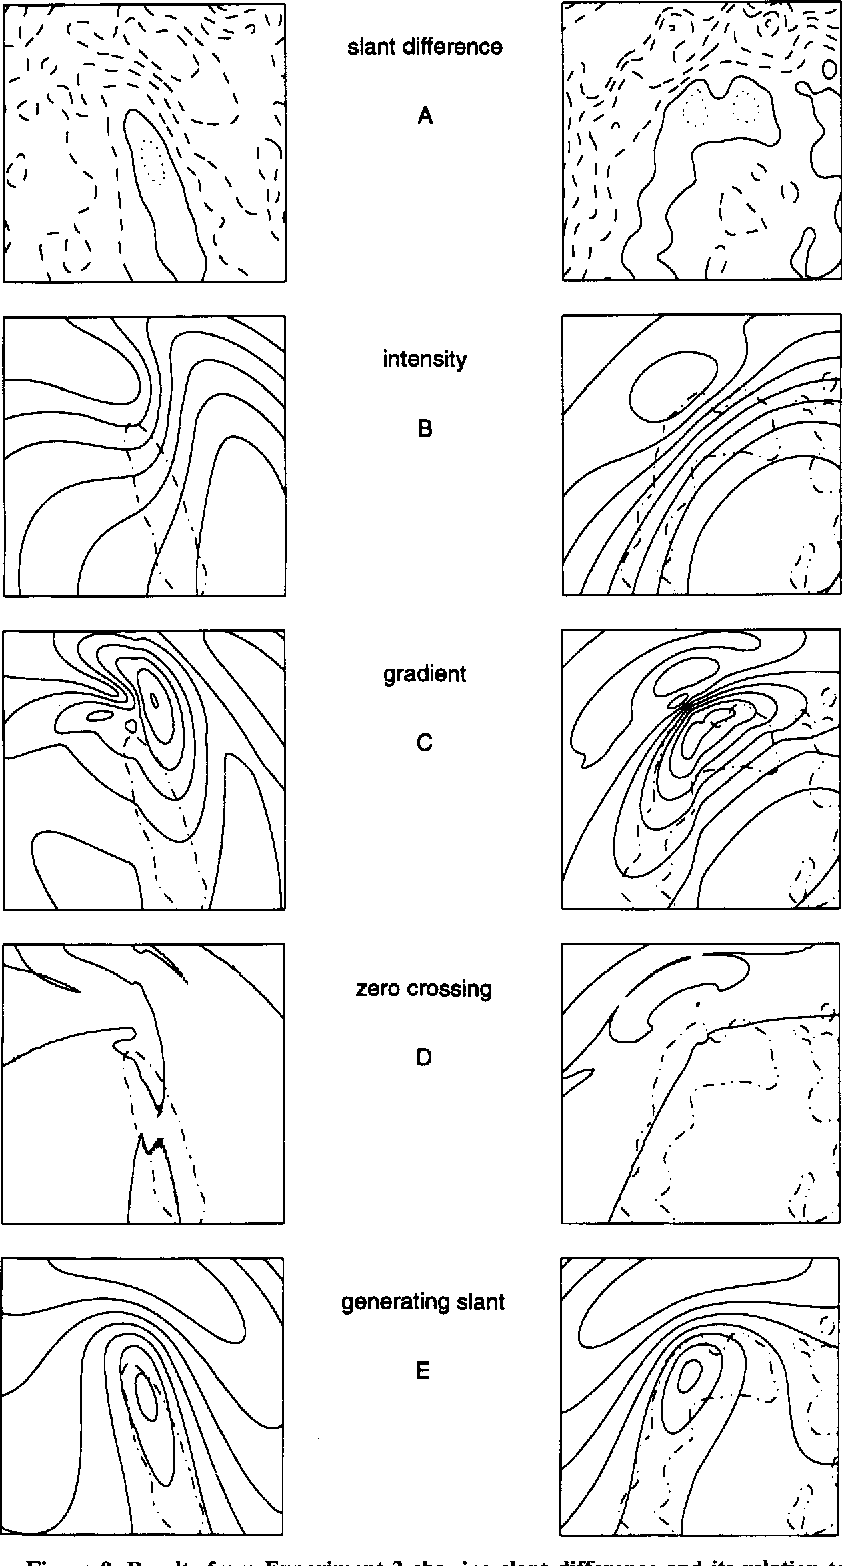 Figure 9. Results from Experiment 2 showing slant difference and its relation to image properties and the generating slant. The left column displays the results for the surface orientation identical to that in Experiment 1. The right column displays the results for the rotated orientation. (A) The contour map ofslant difference, with the solid line indicating the line of zero slant difference. The dotted line indicates positive slant difference, and the dashed line indicates negative slant difference. The contour lines indicate values of slant at 10· intervals. For the following panels, the contour of zero slant difference is indicated by a superimposed dot-dash line. (B) The contour map ofthe spatially filtered image intensity. (C) The contour map ofthe gradient ofthe filtered image intensity. (D) The zero crossings of the second derivative of the filtered image intensity taken in the direction of gradient. (E) The contour map of generating slant.